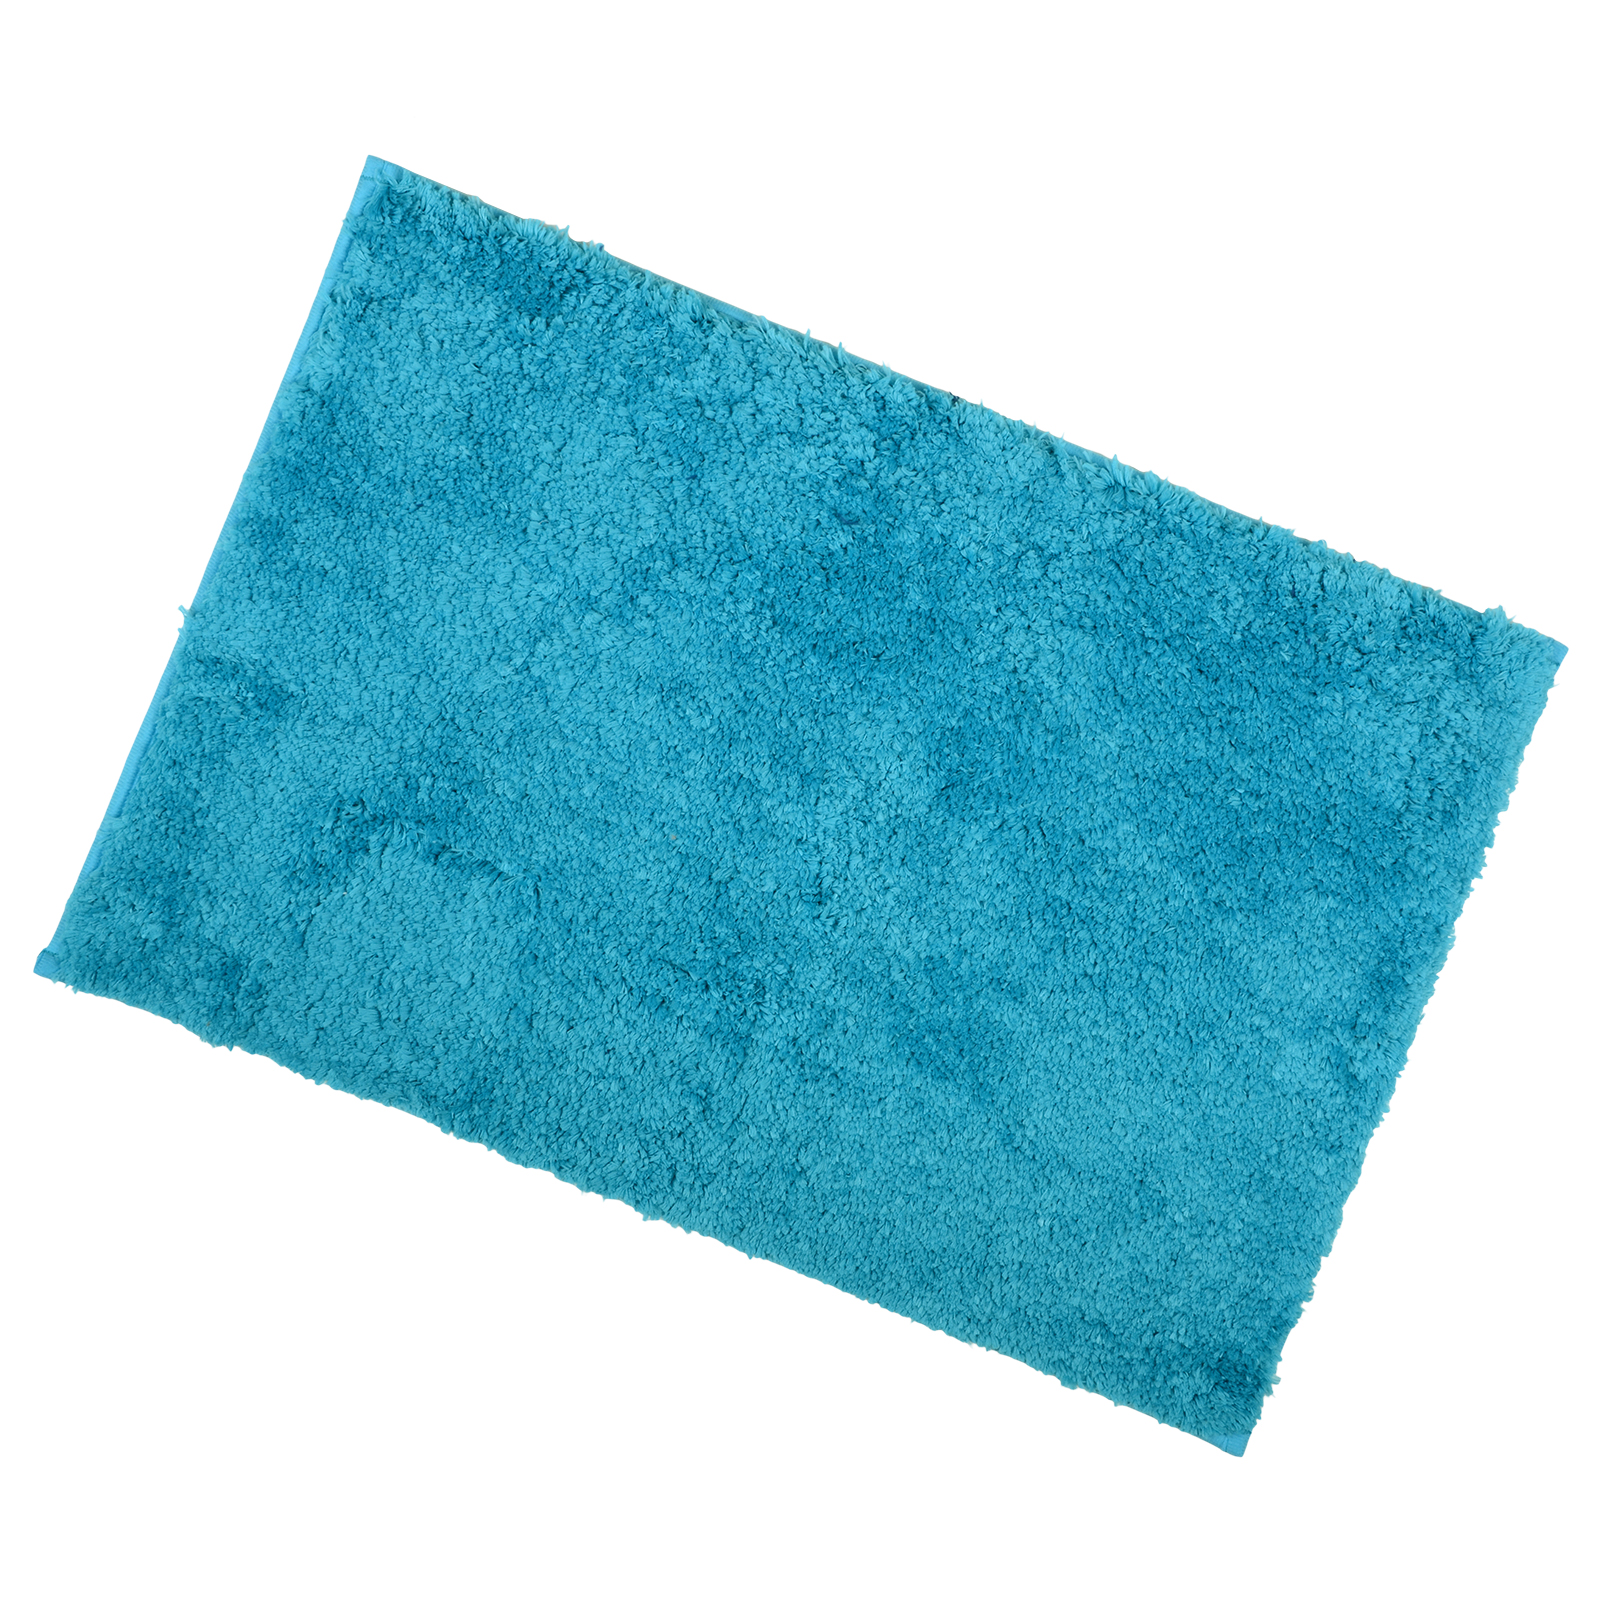 Teal 40x60cm Tufted Micro Fibre Bath Shower Mat Rug With